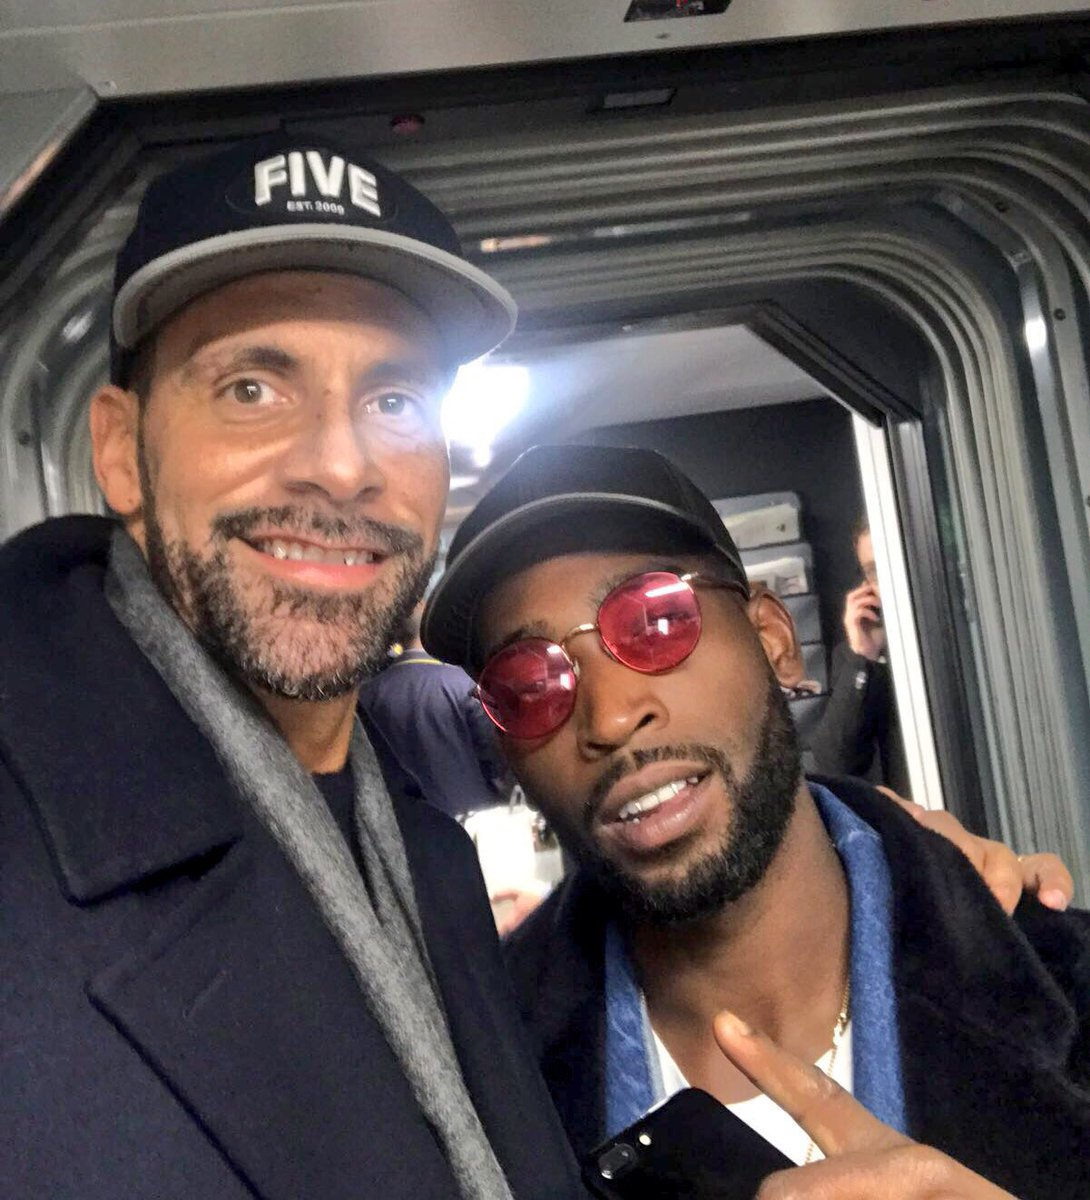 Come on now people.... give me ya favourite @TinieTempah song... good to see u! 👊🏽